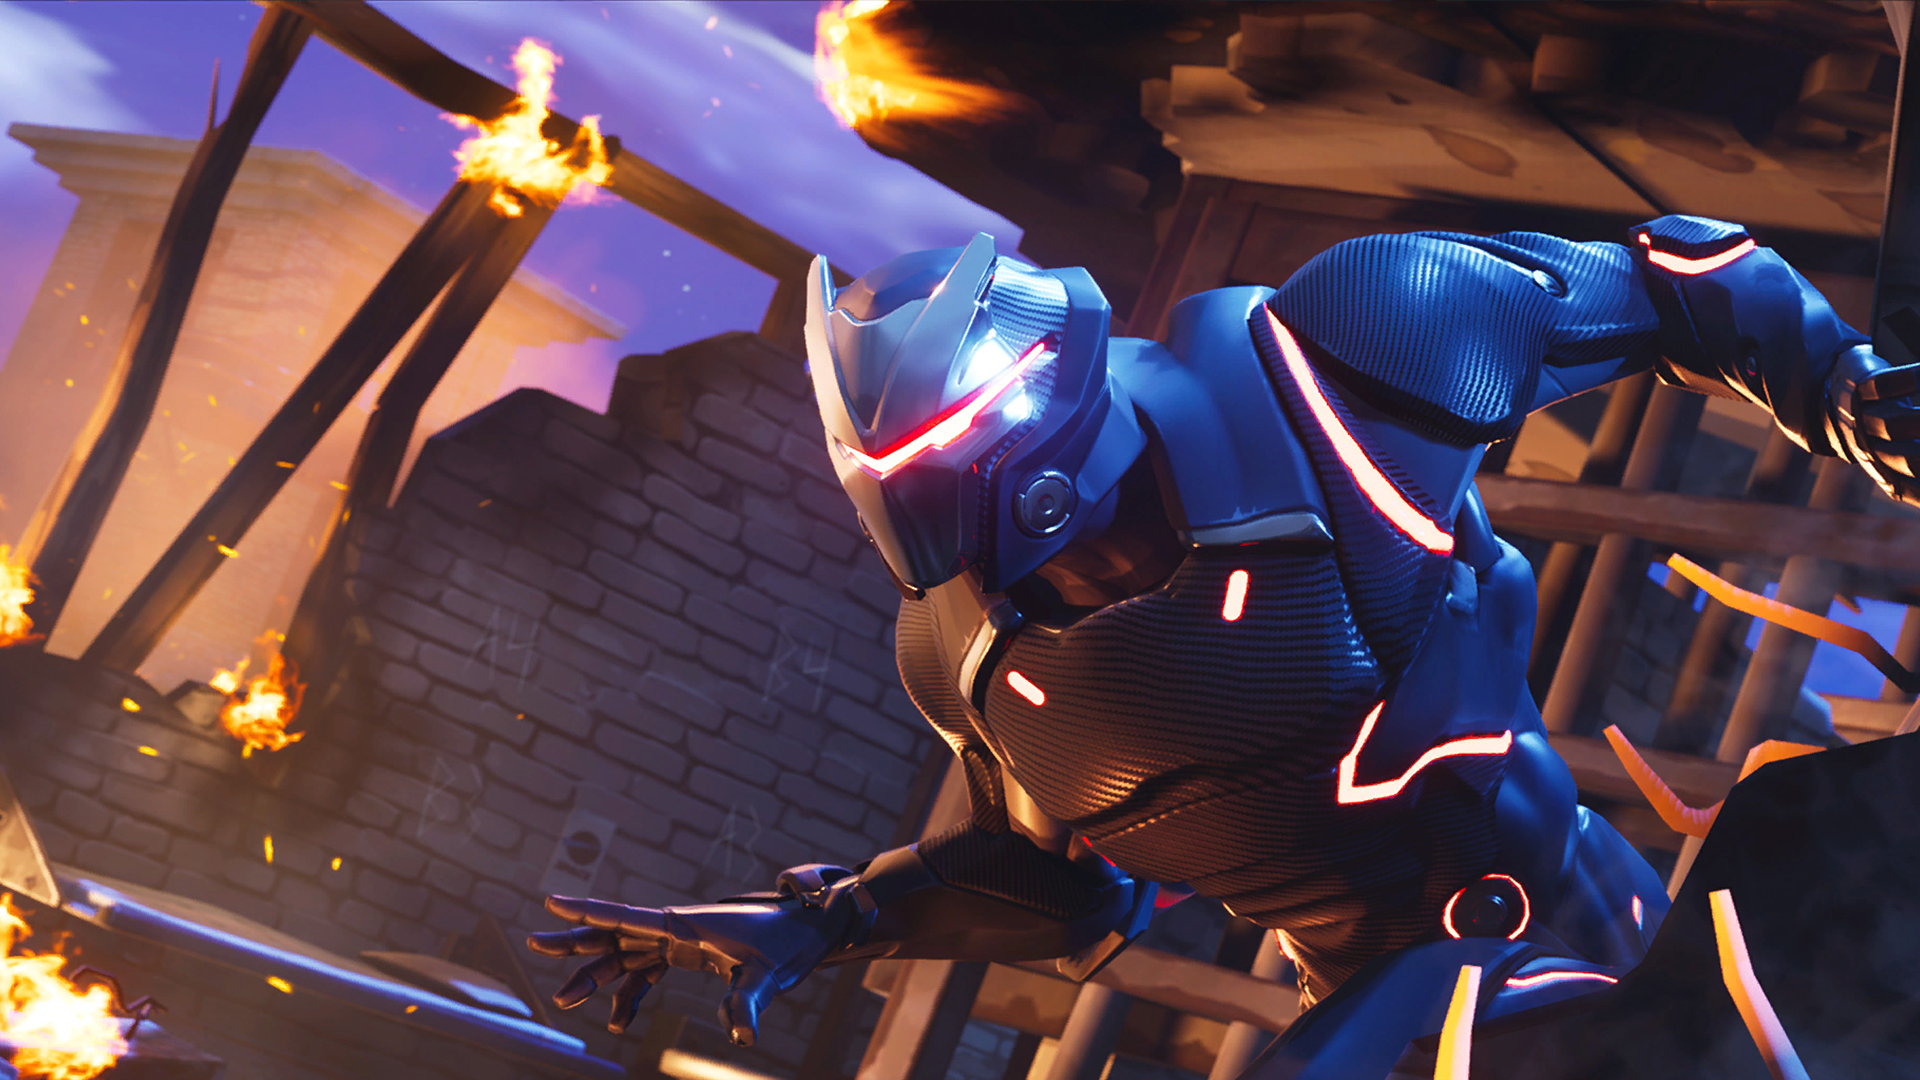 Fortnite Backgrounds Omega 4034 Wallpapers and Stock Photos 1920x1080